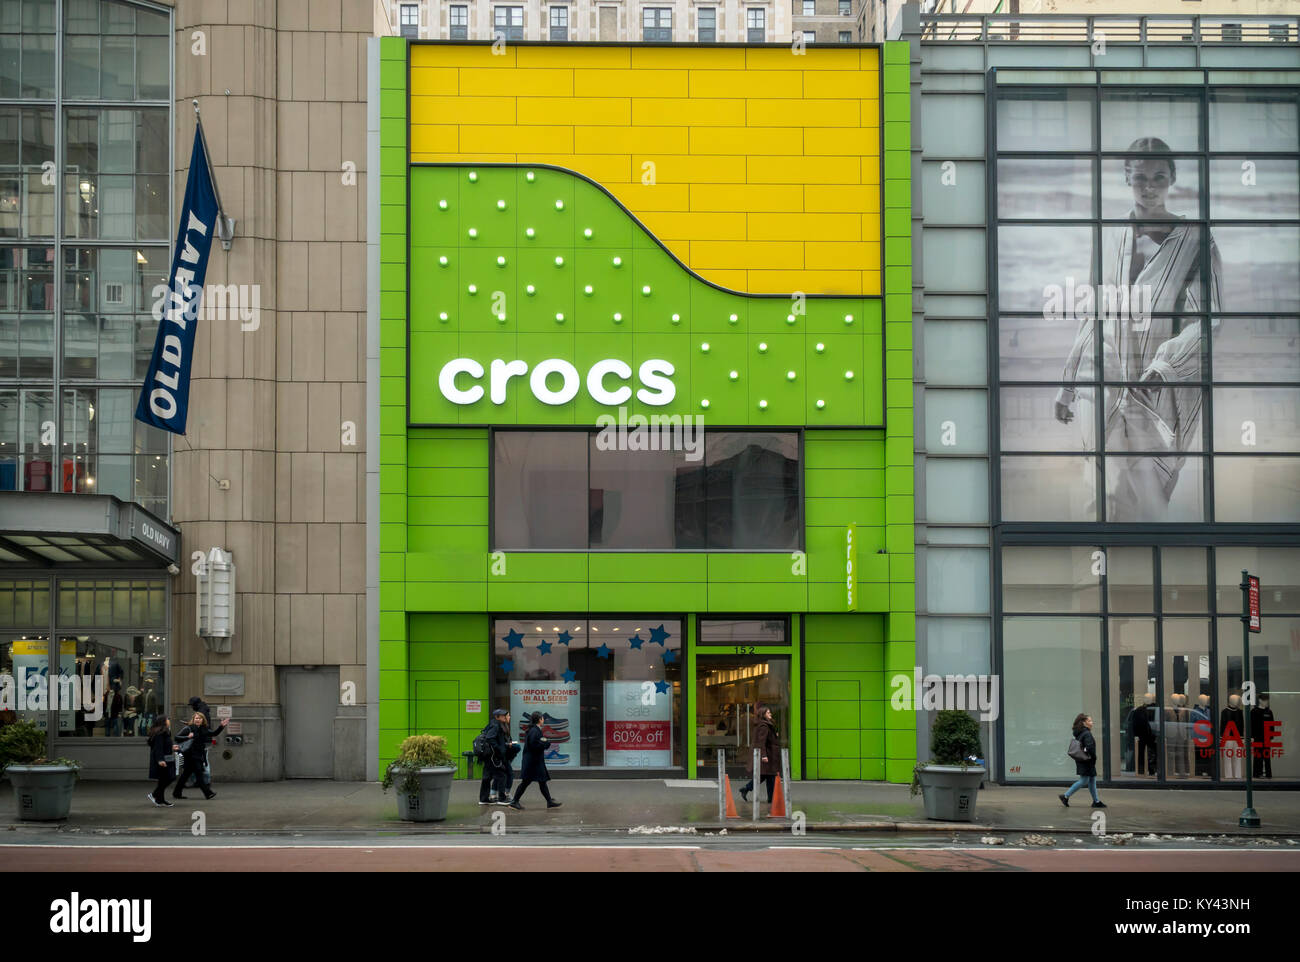 5a2b4818edac4a The Crocs store in Herald Square in New York